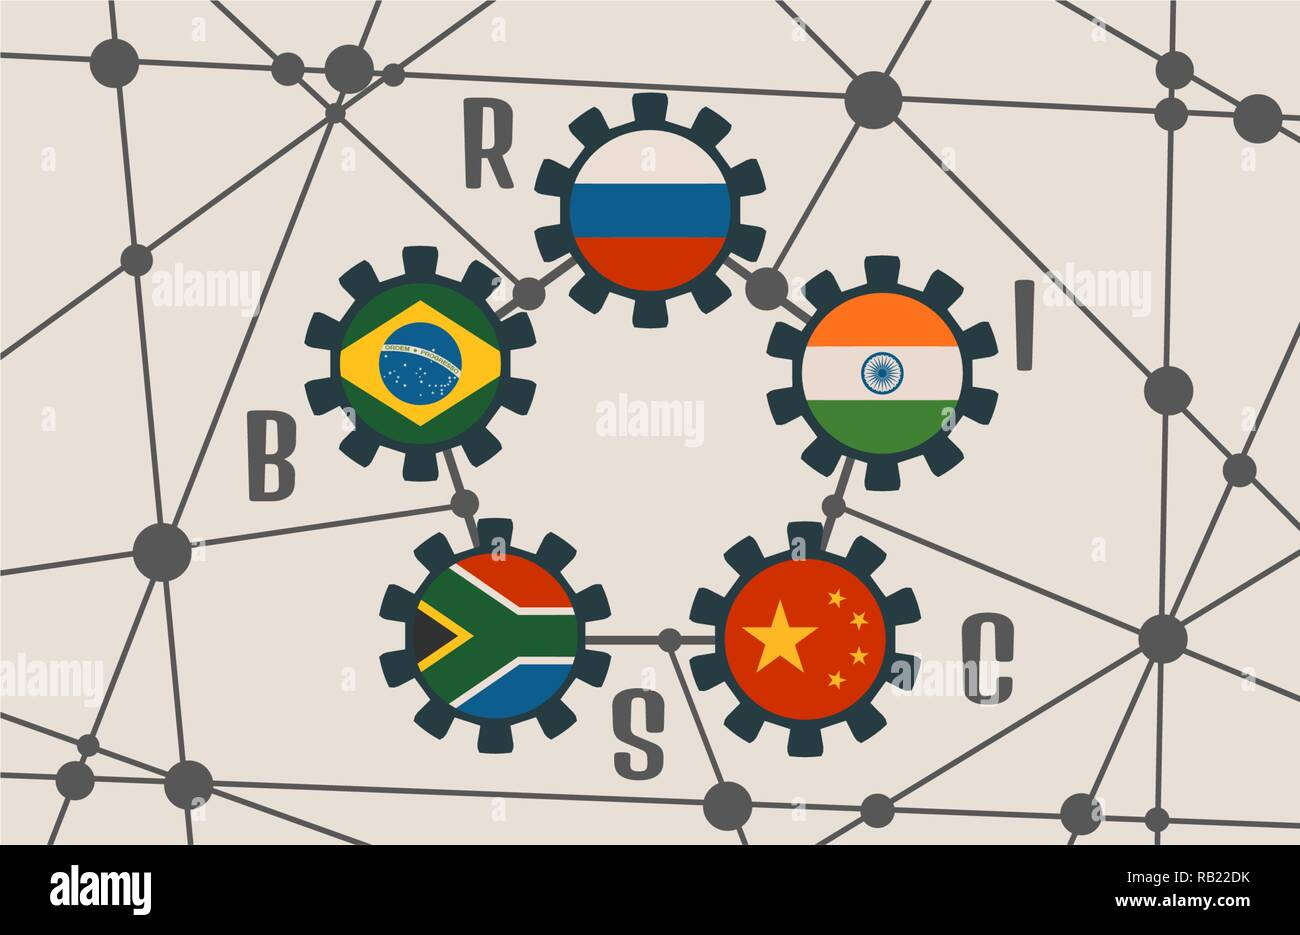 BRICS union members national flags on gears - Stock Vector